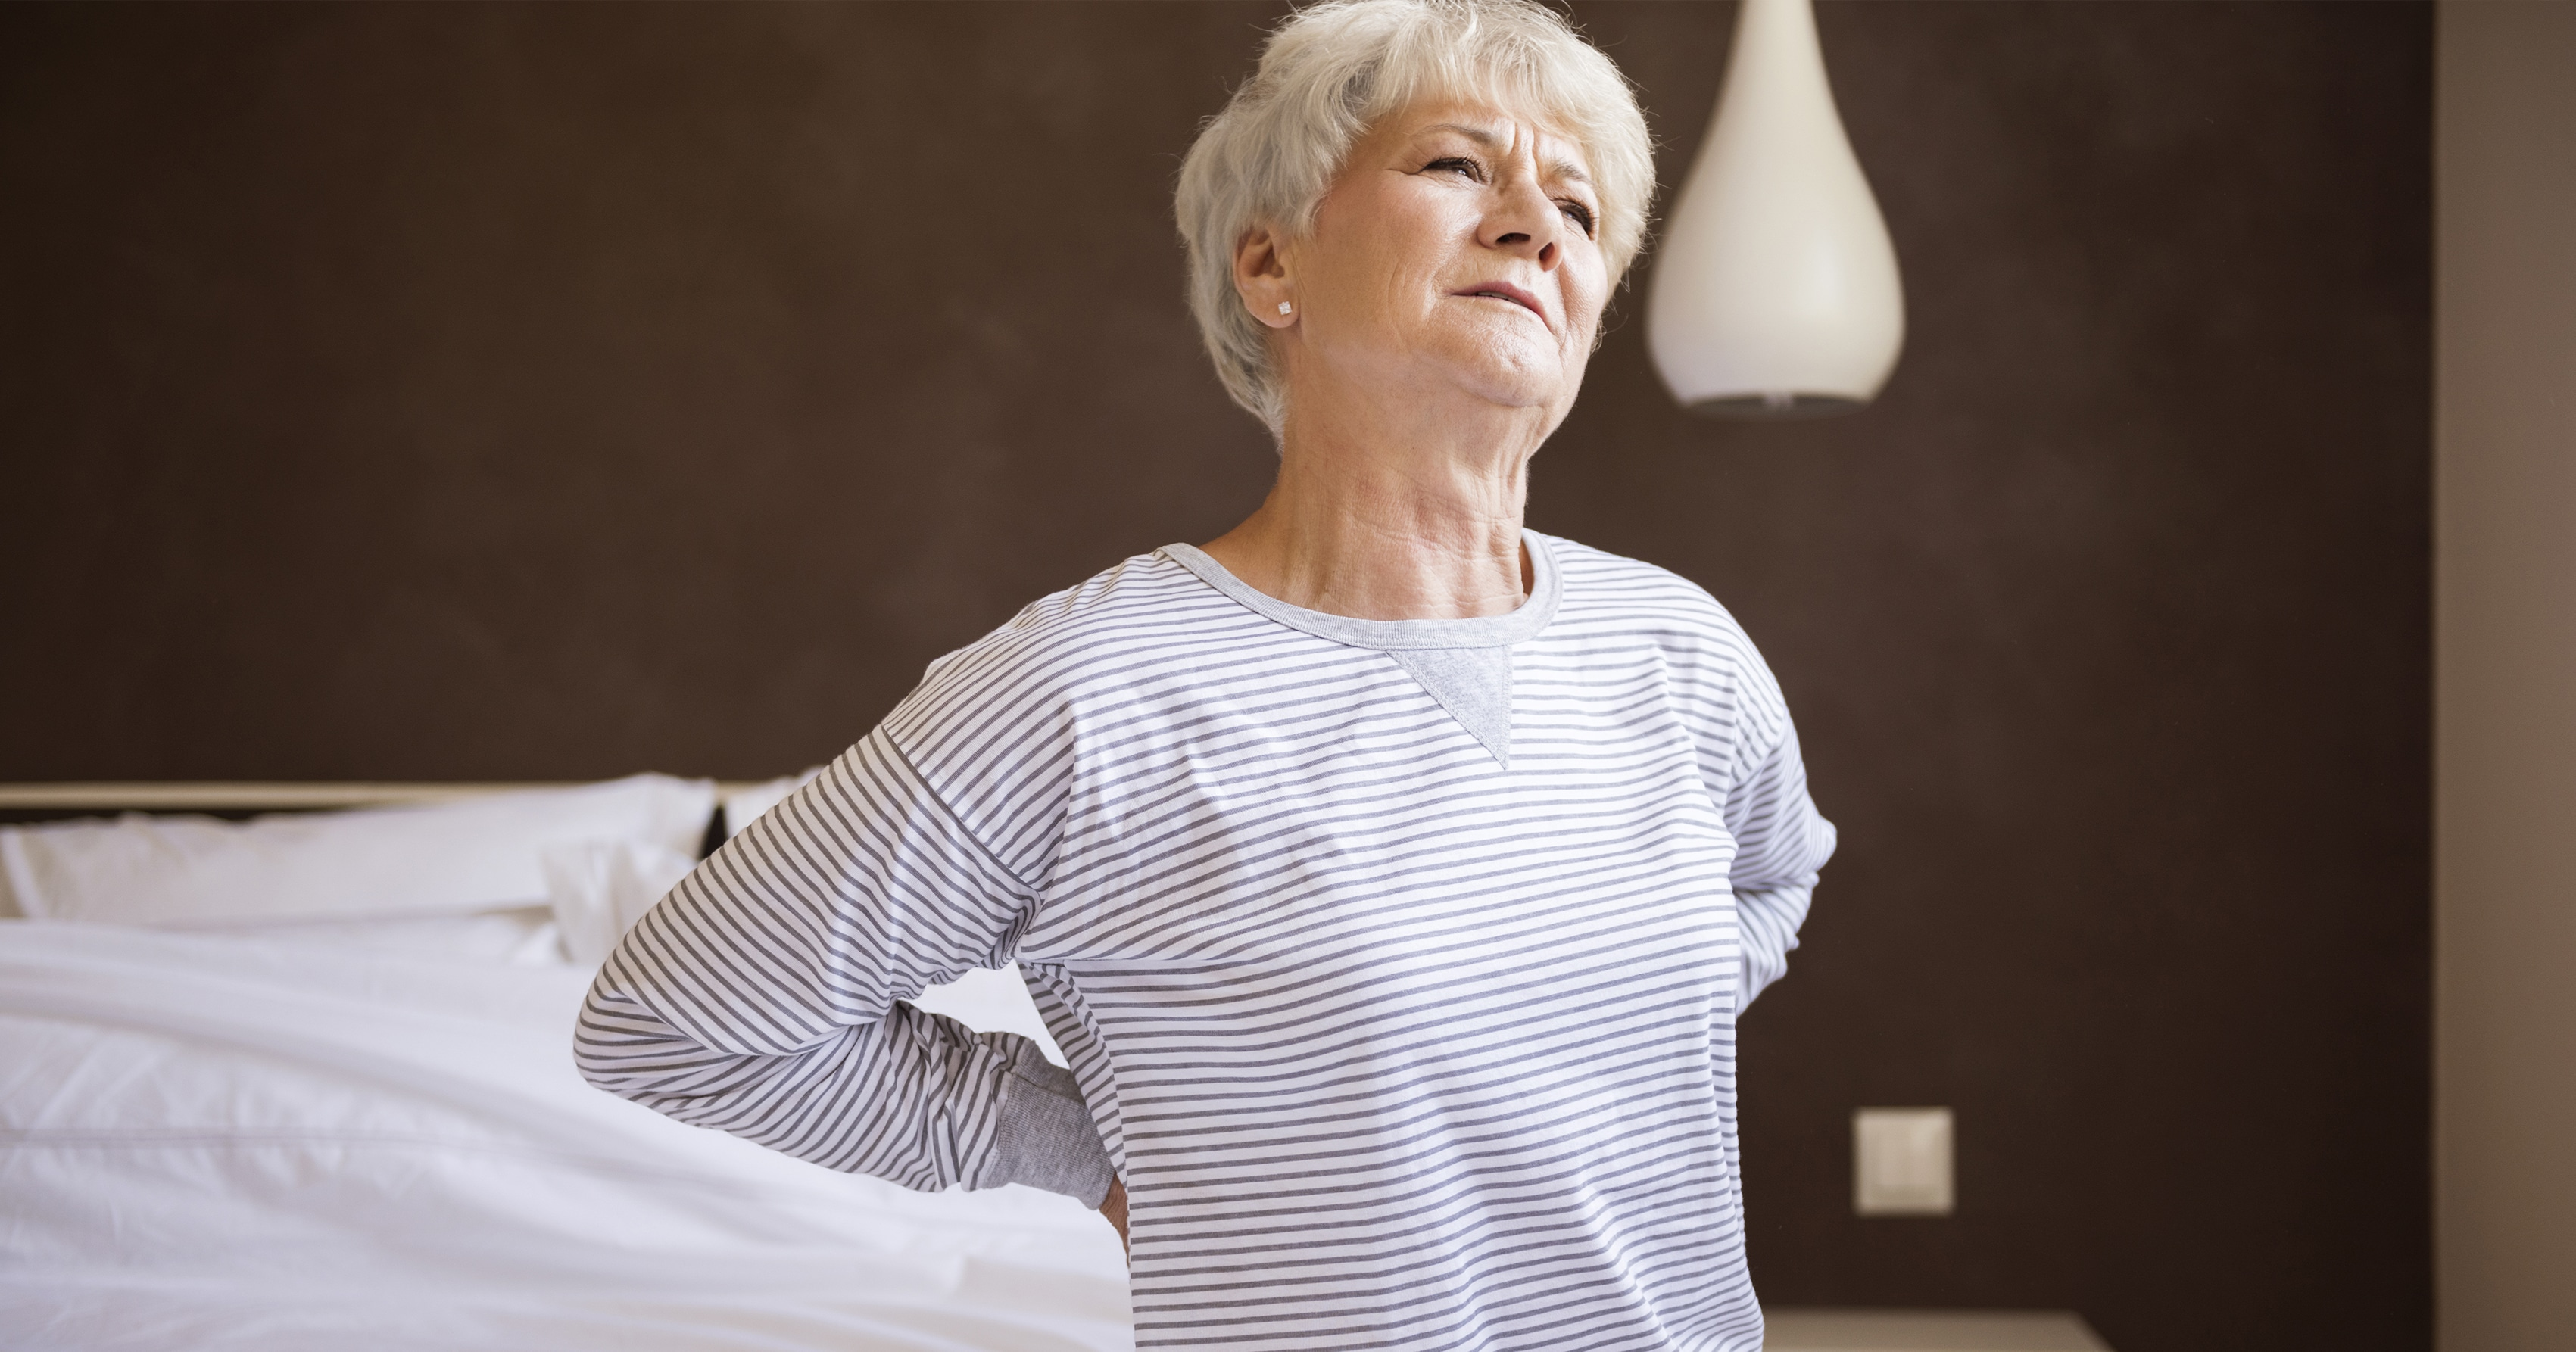 Seniors Living with Chronic Pain